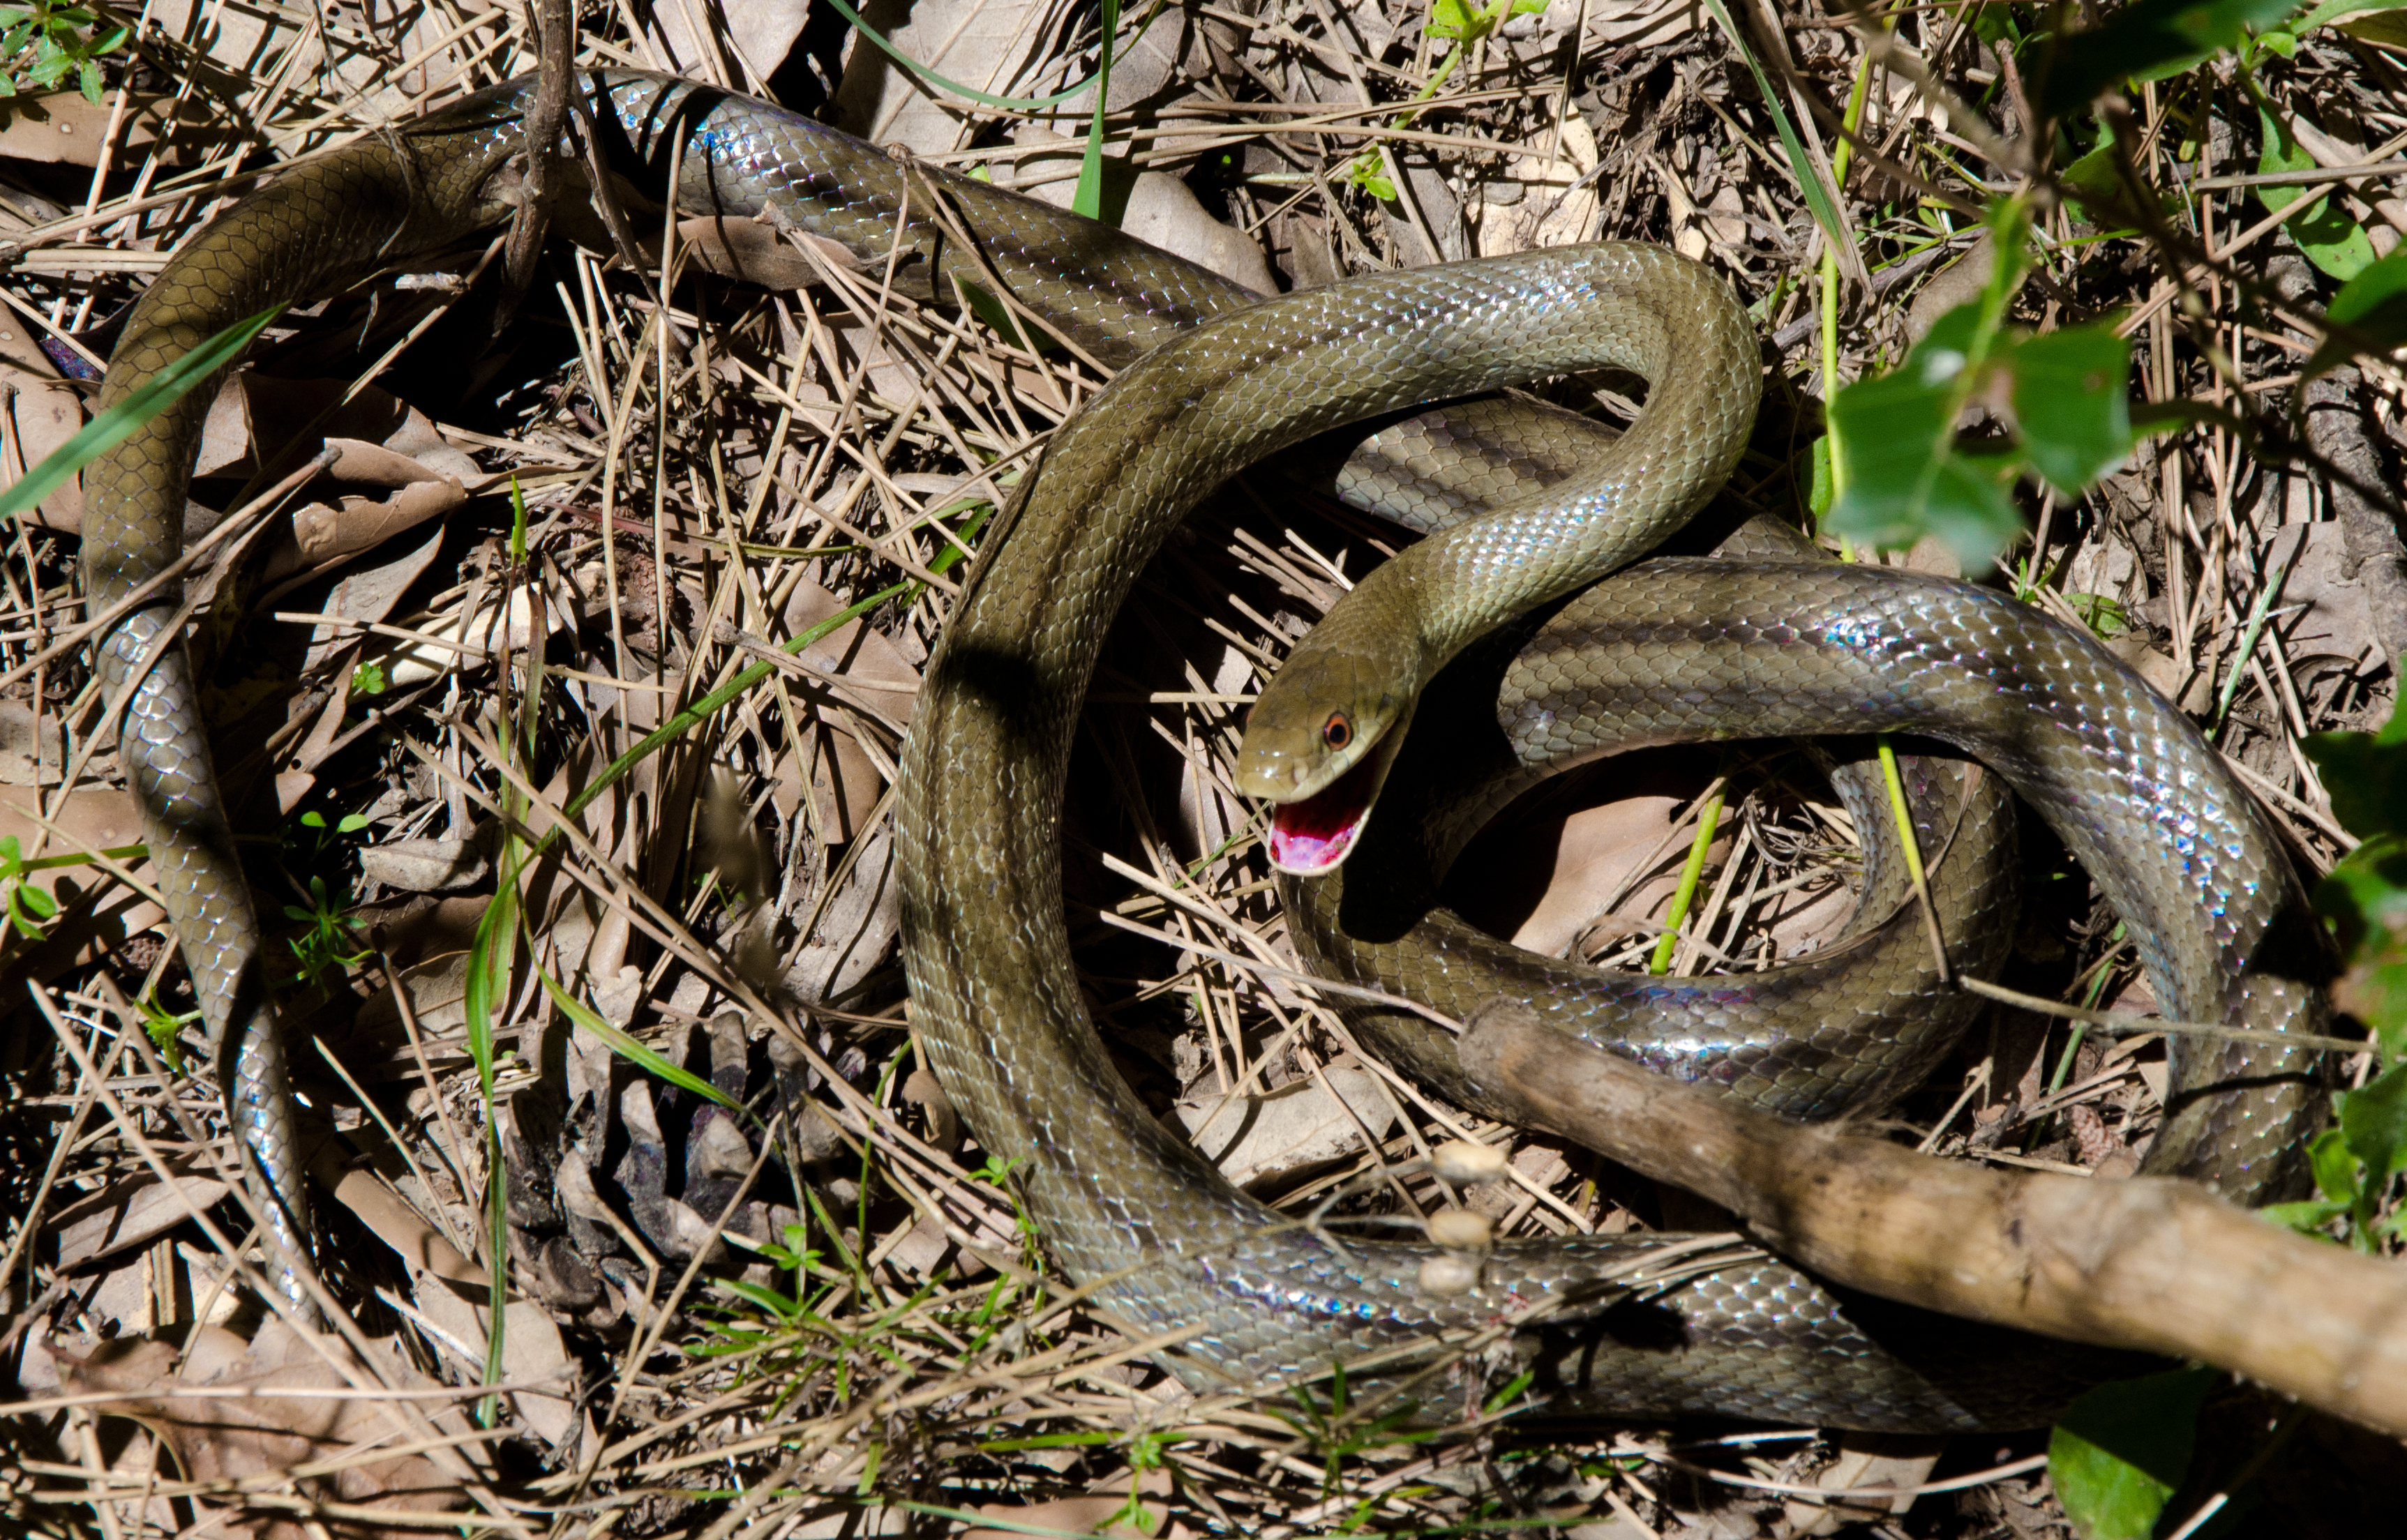 California Cops Found Dozens of Snakes and Gators in a ...